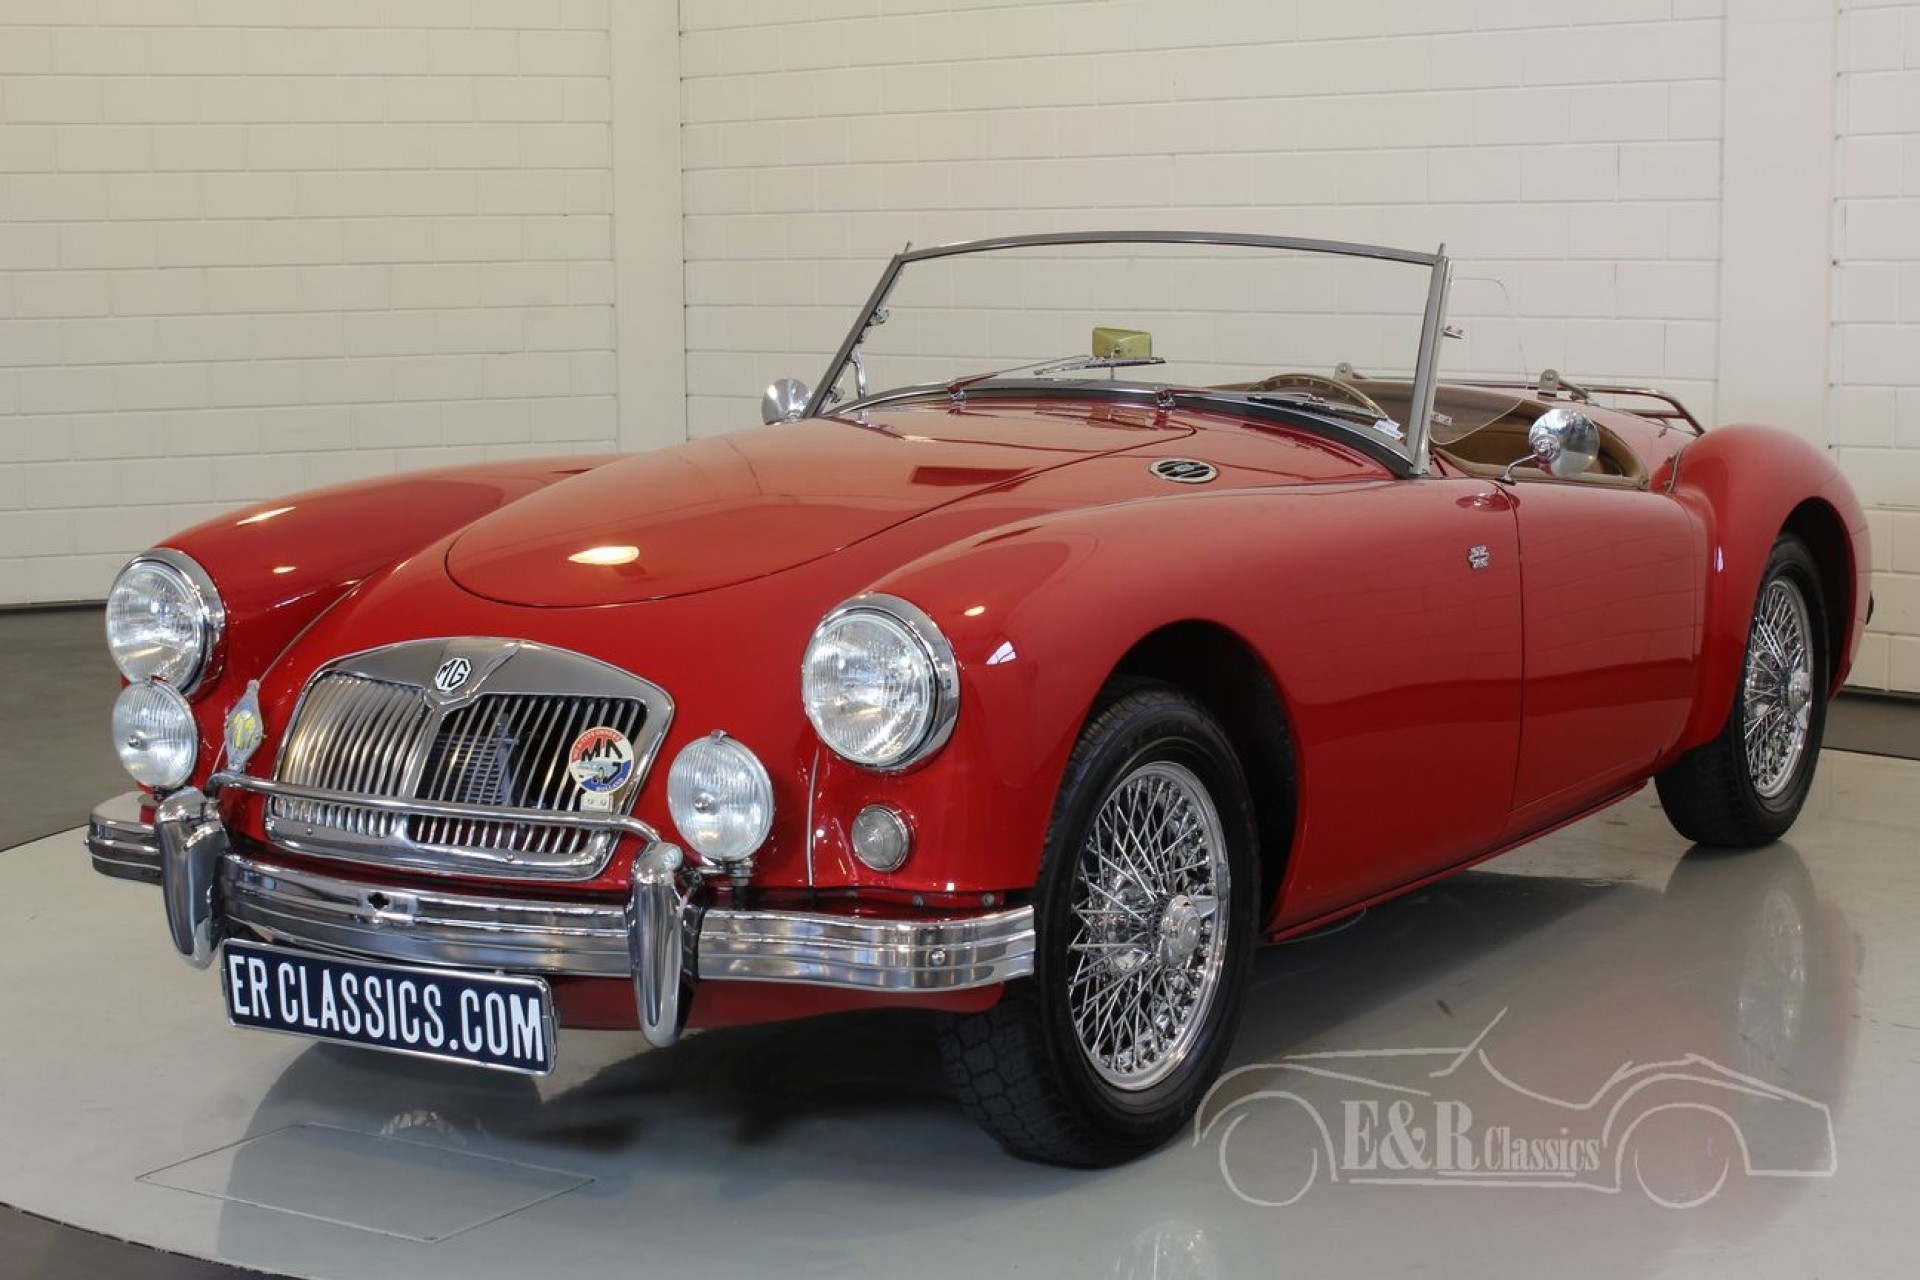 mg mga cabriolet 1959 vendre erclassics. Black Bedroom Furniture Sets. Home Design Ideas